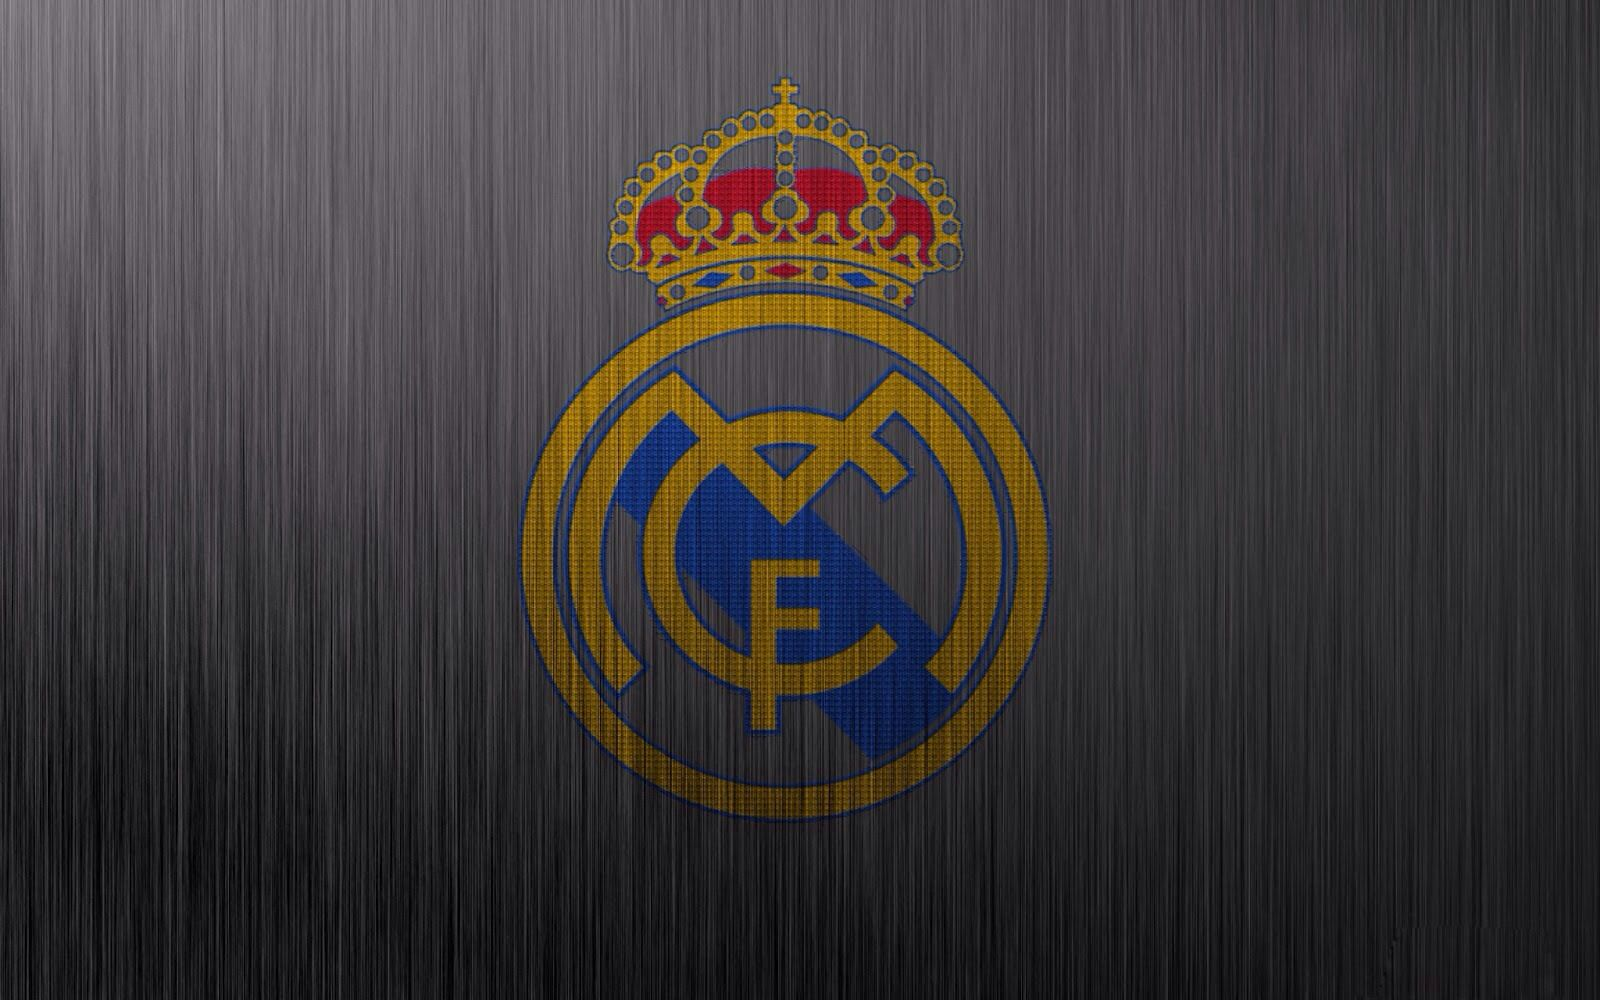 1600x1000 - Real Madrid C.F. Wallpapers 30